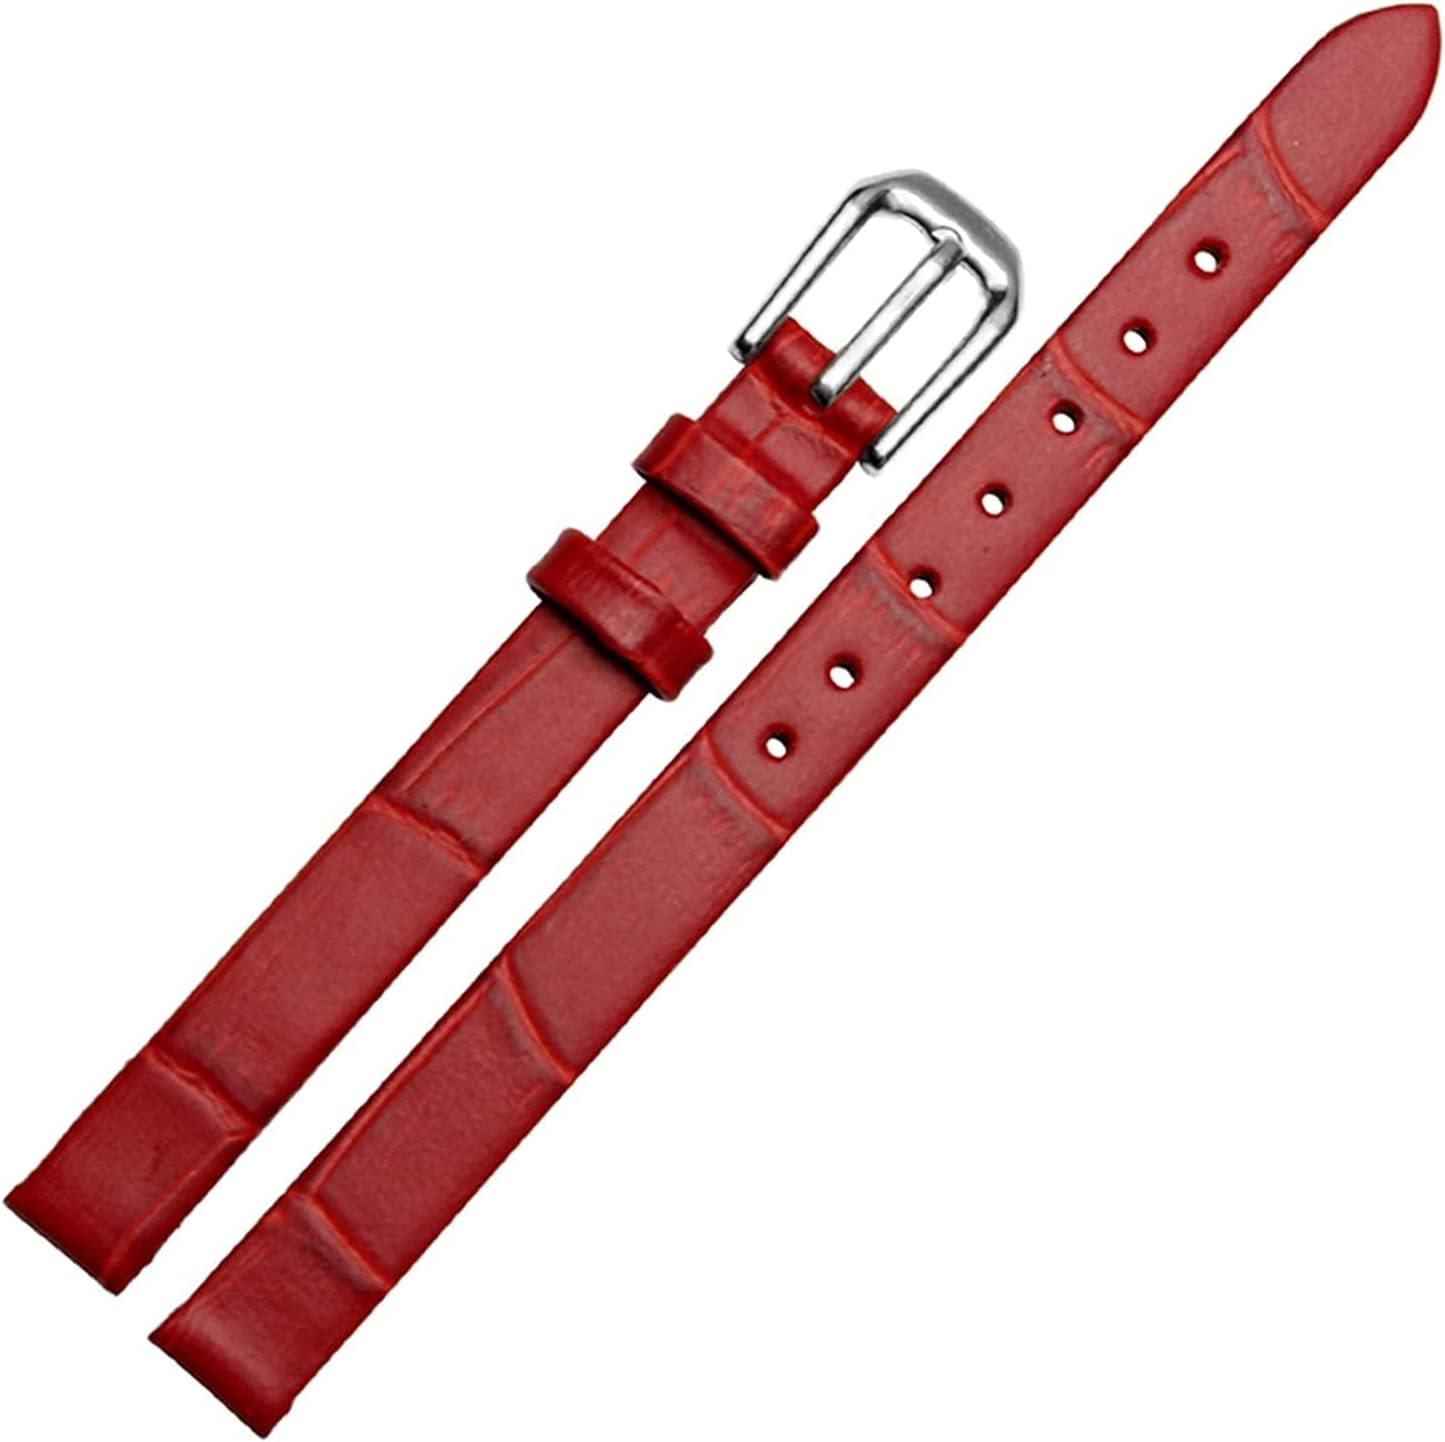 Chtom Leather Wristwatches Omaha Mall Band Lady Small Fashionable Watchband Size 6-12mm